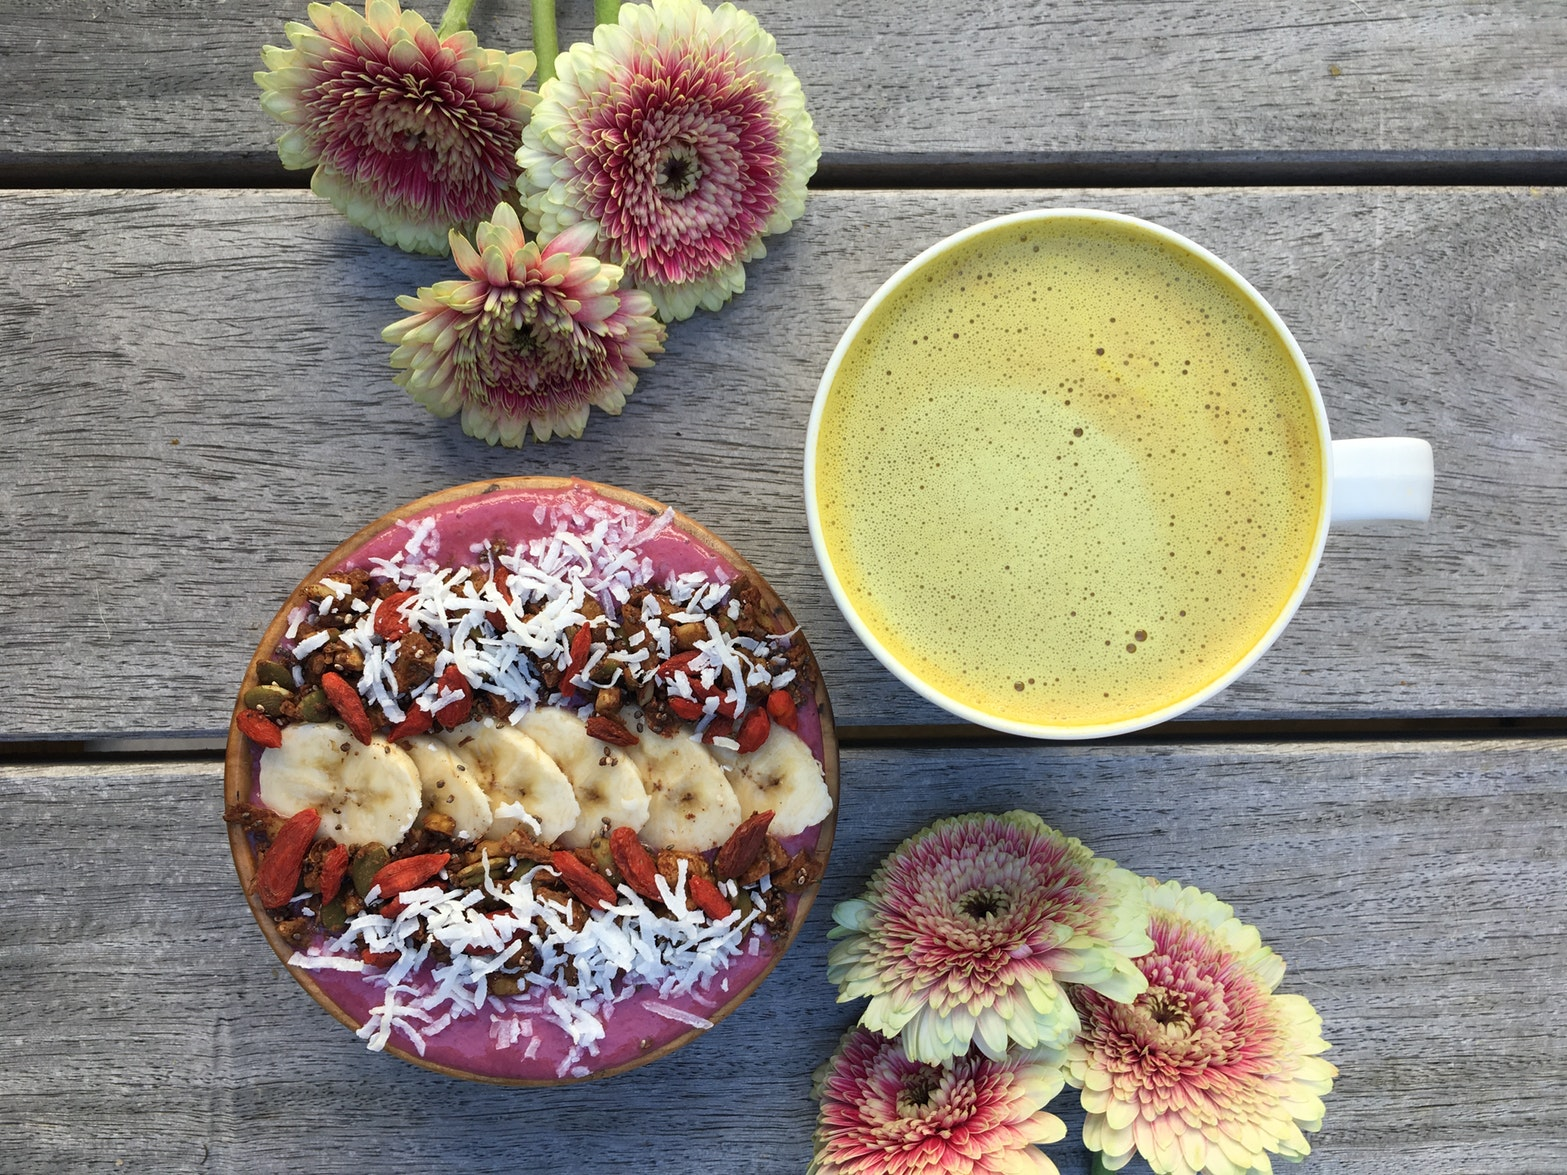 How to build a Smoothie Bowl photo by @lucyturner